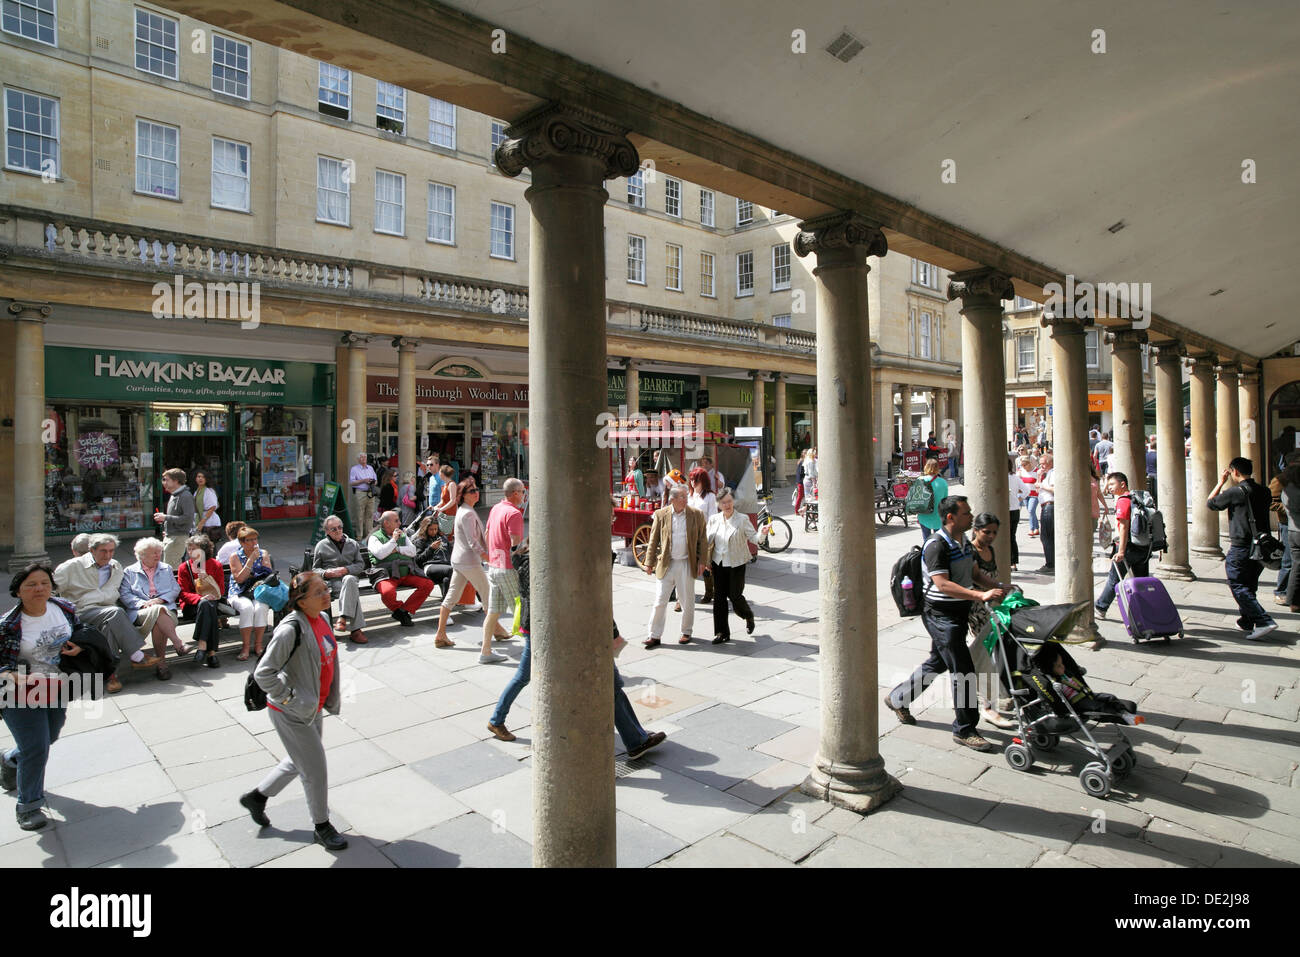 Colonnade, Stall Street, Bath city centre - separates Stall Street from the Abbey Churchyard, off to the right. - Stock Image